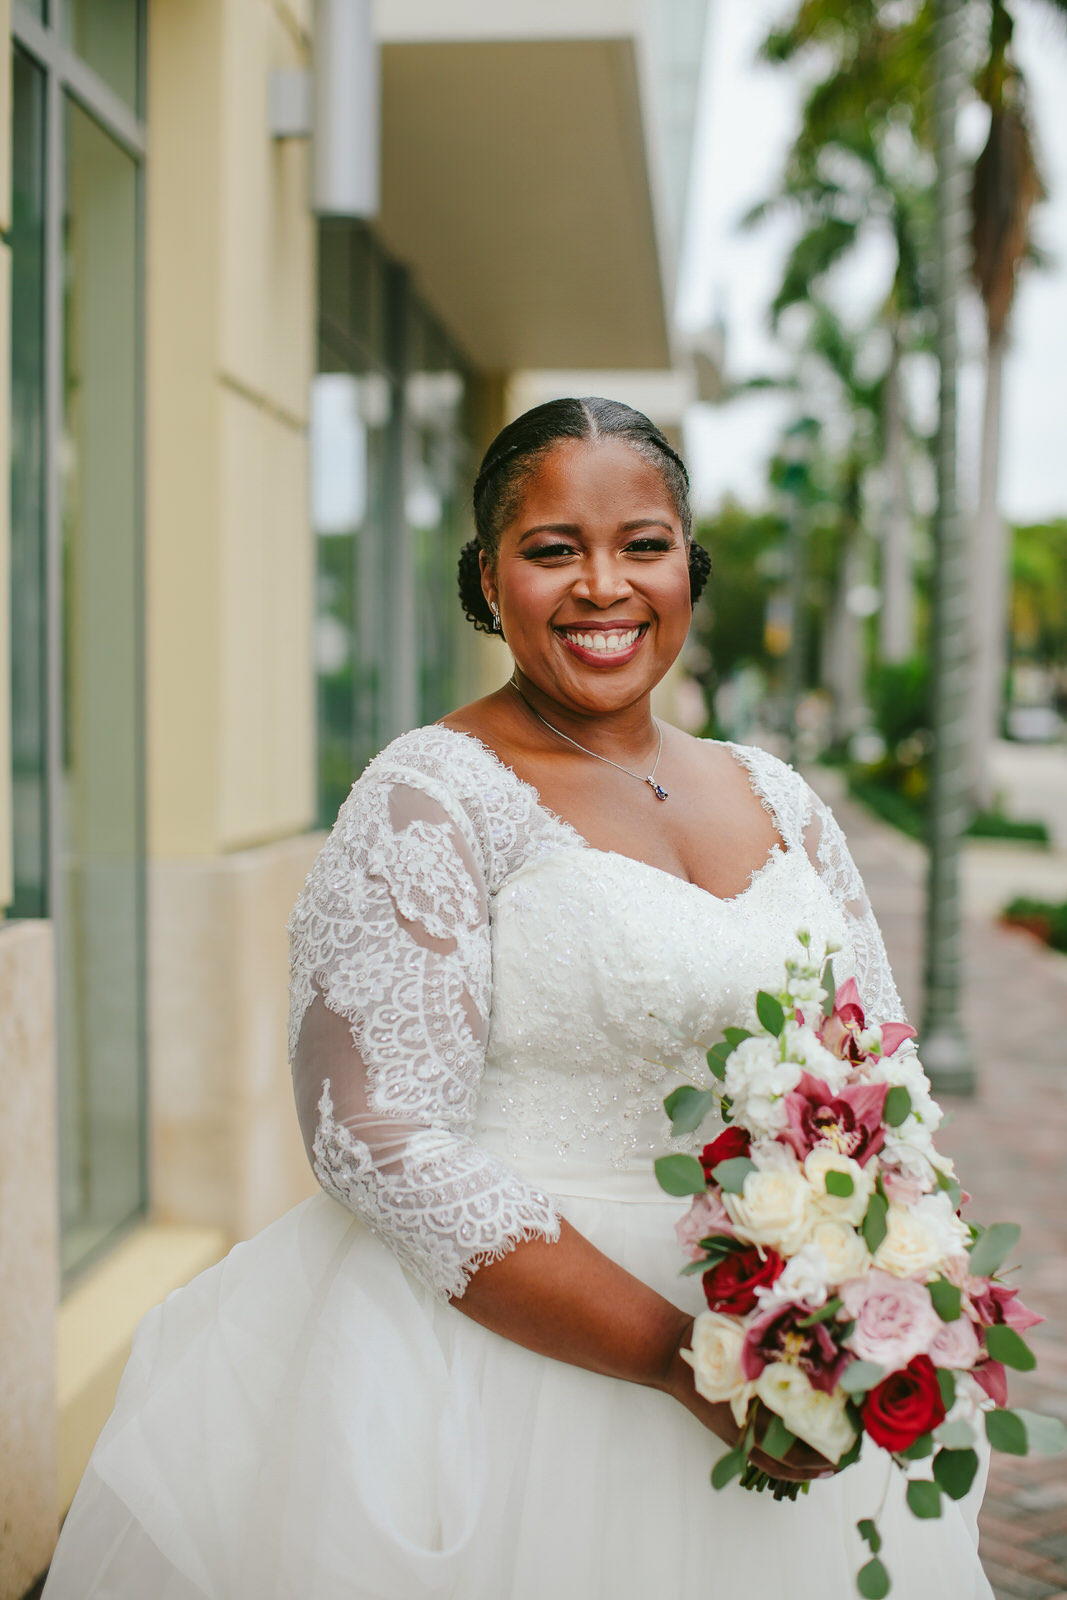 bride-wedding-photography-south-florida-portraits.jpg